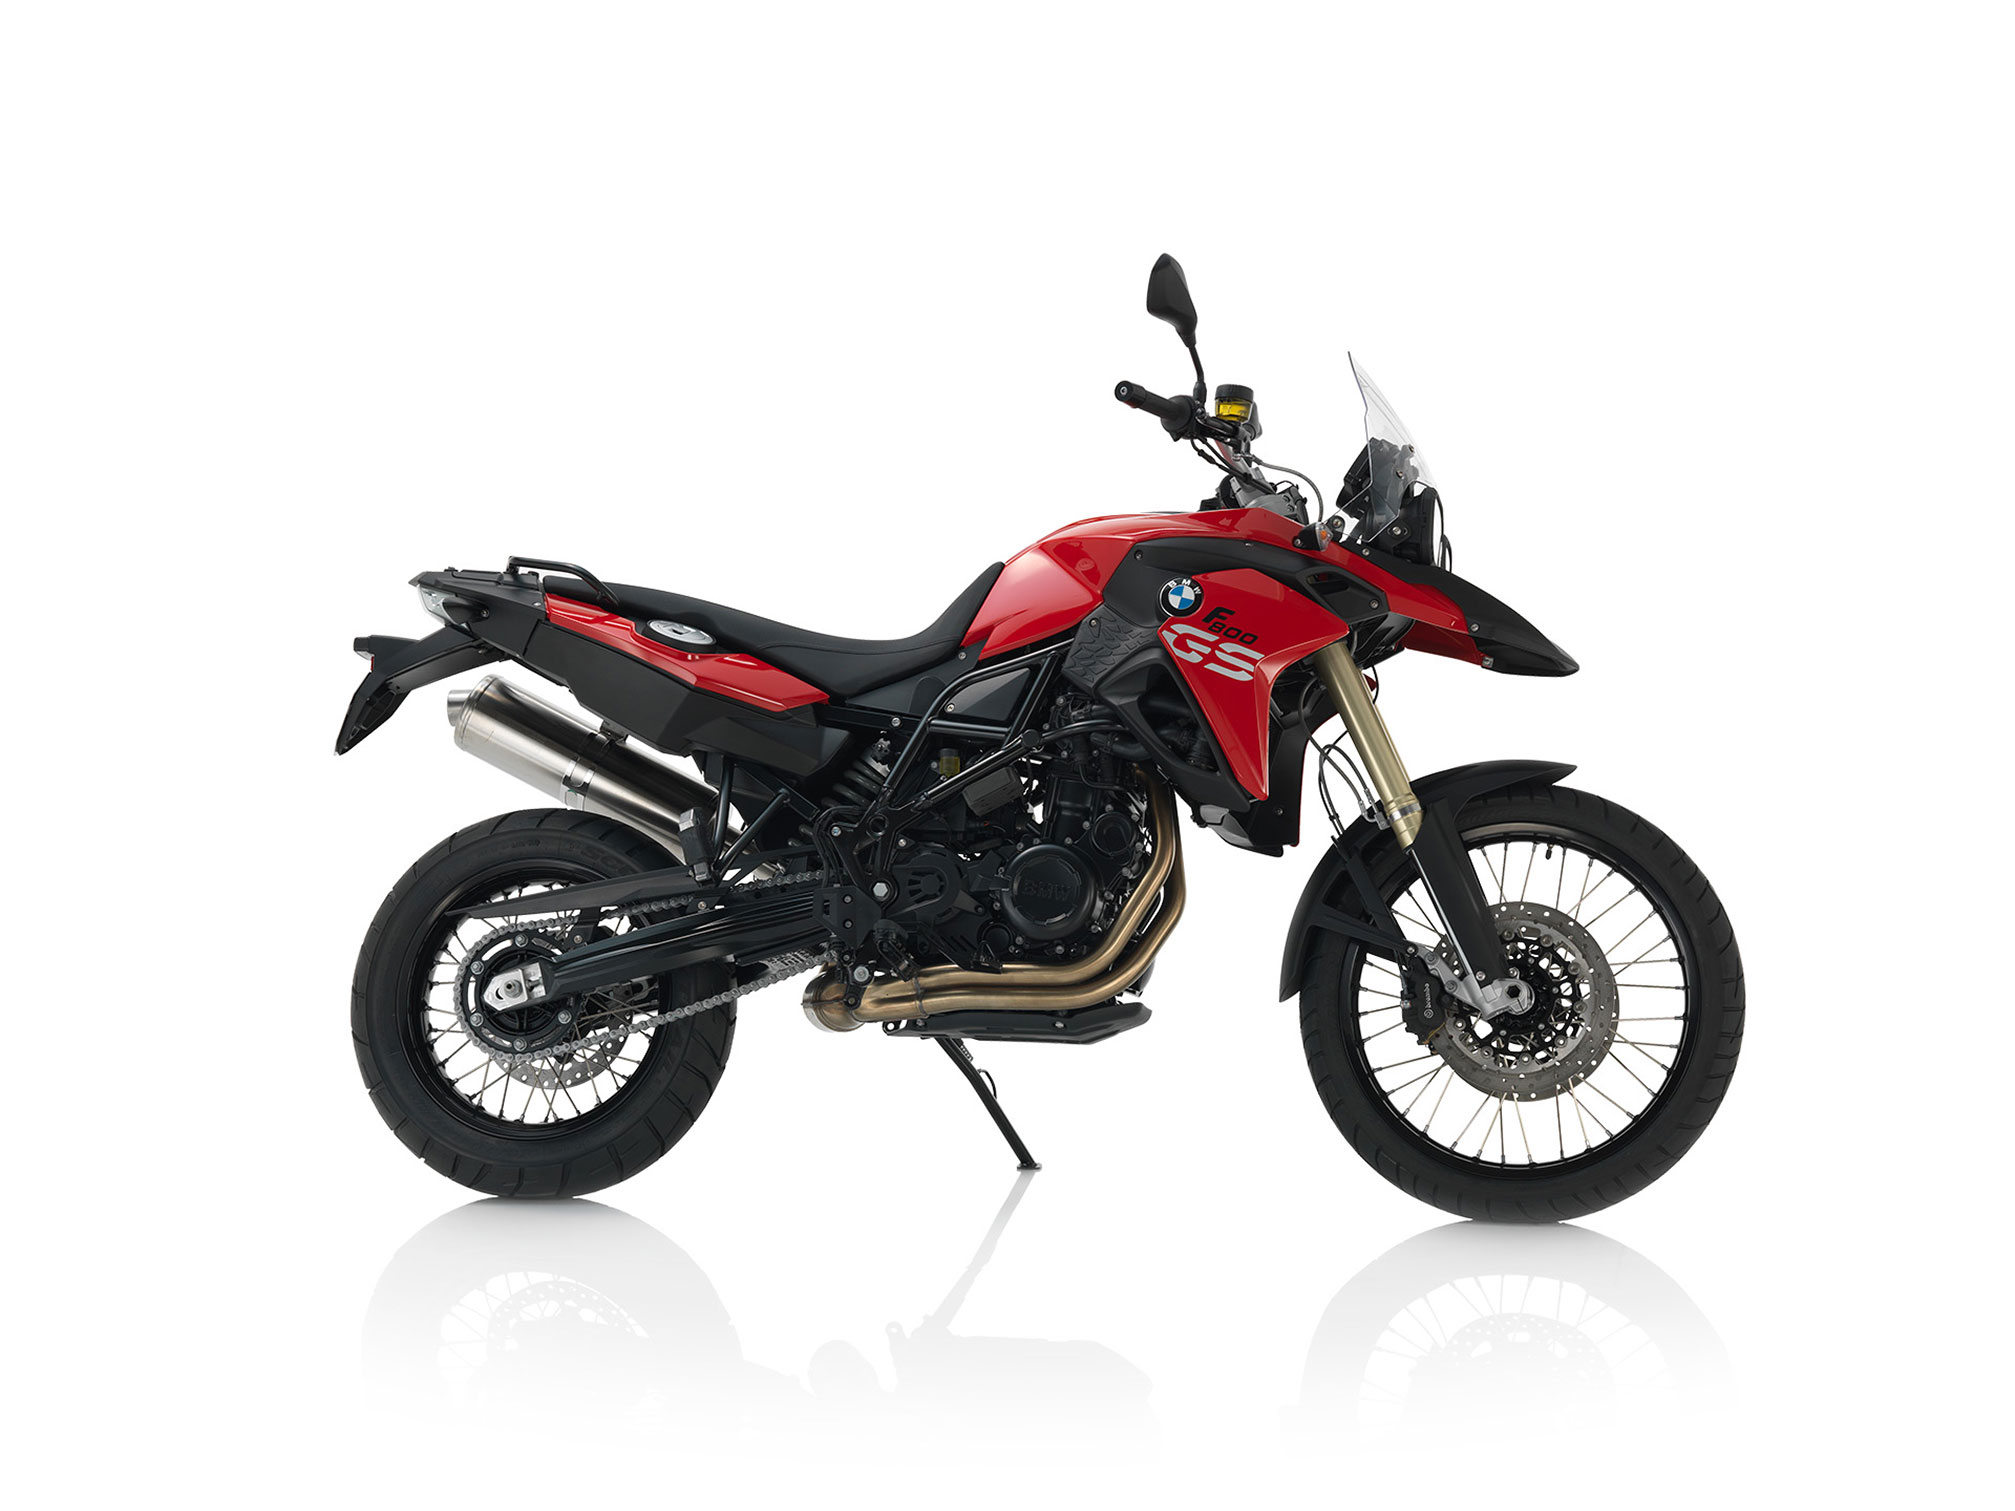 BMW F800 GS Motorcycle and scooter rentals in Bologna (Italy)